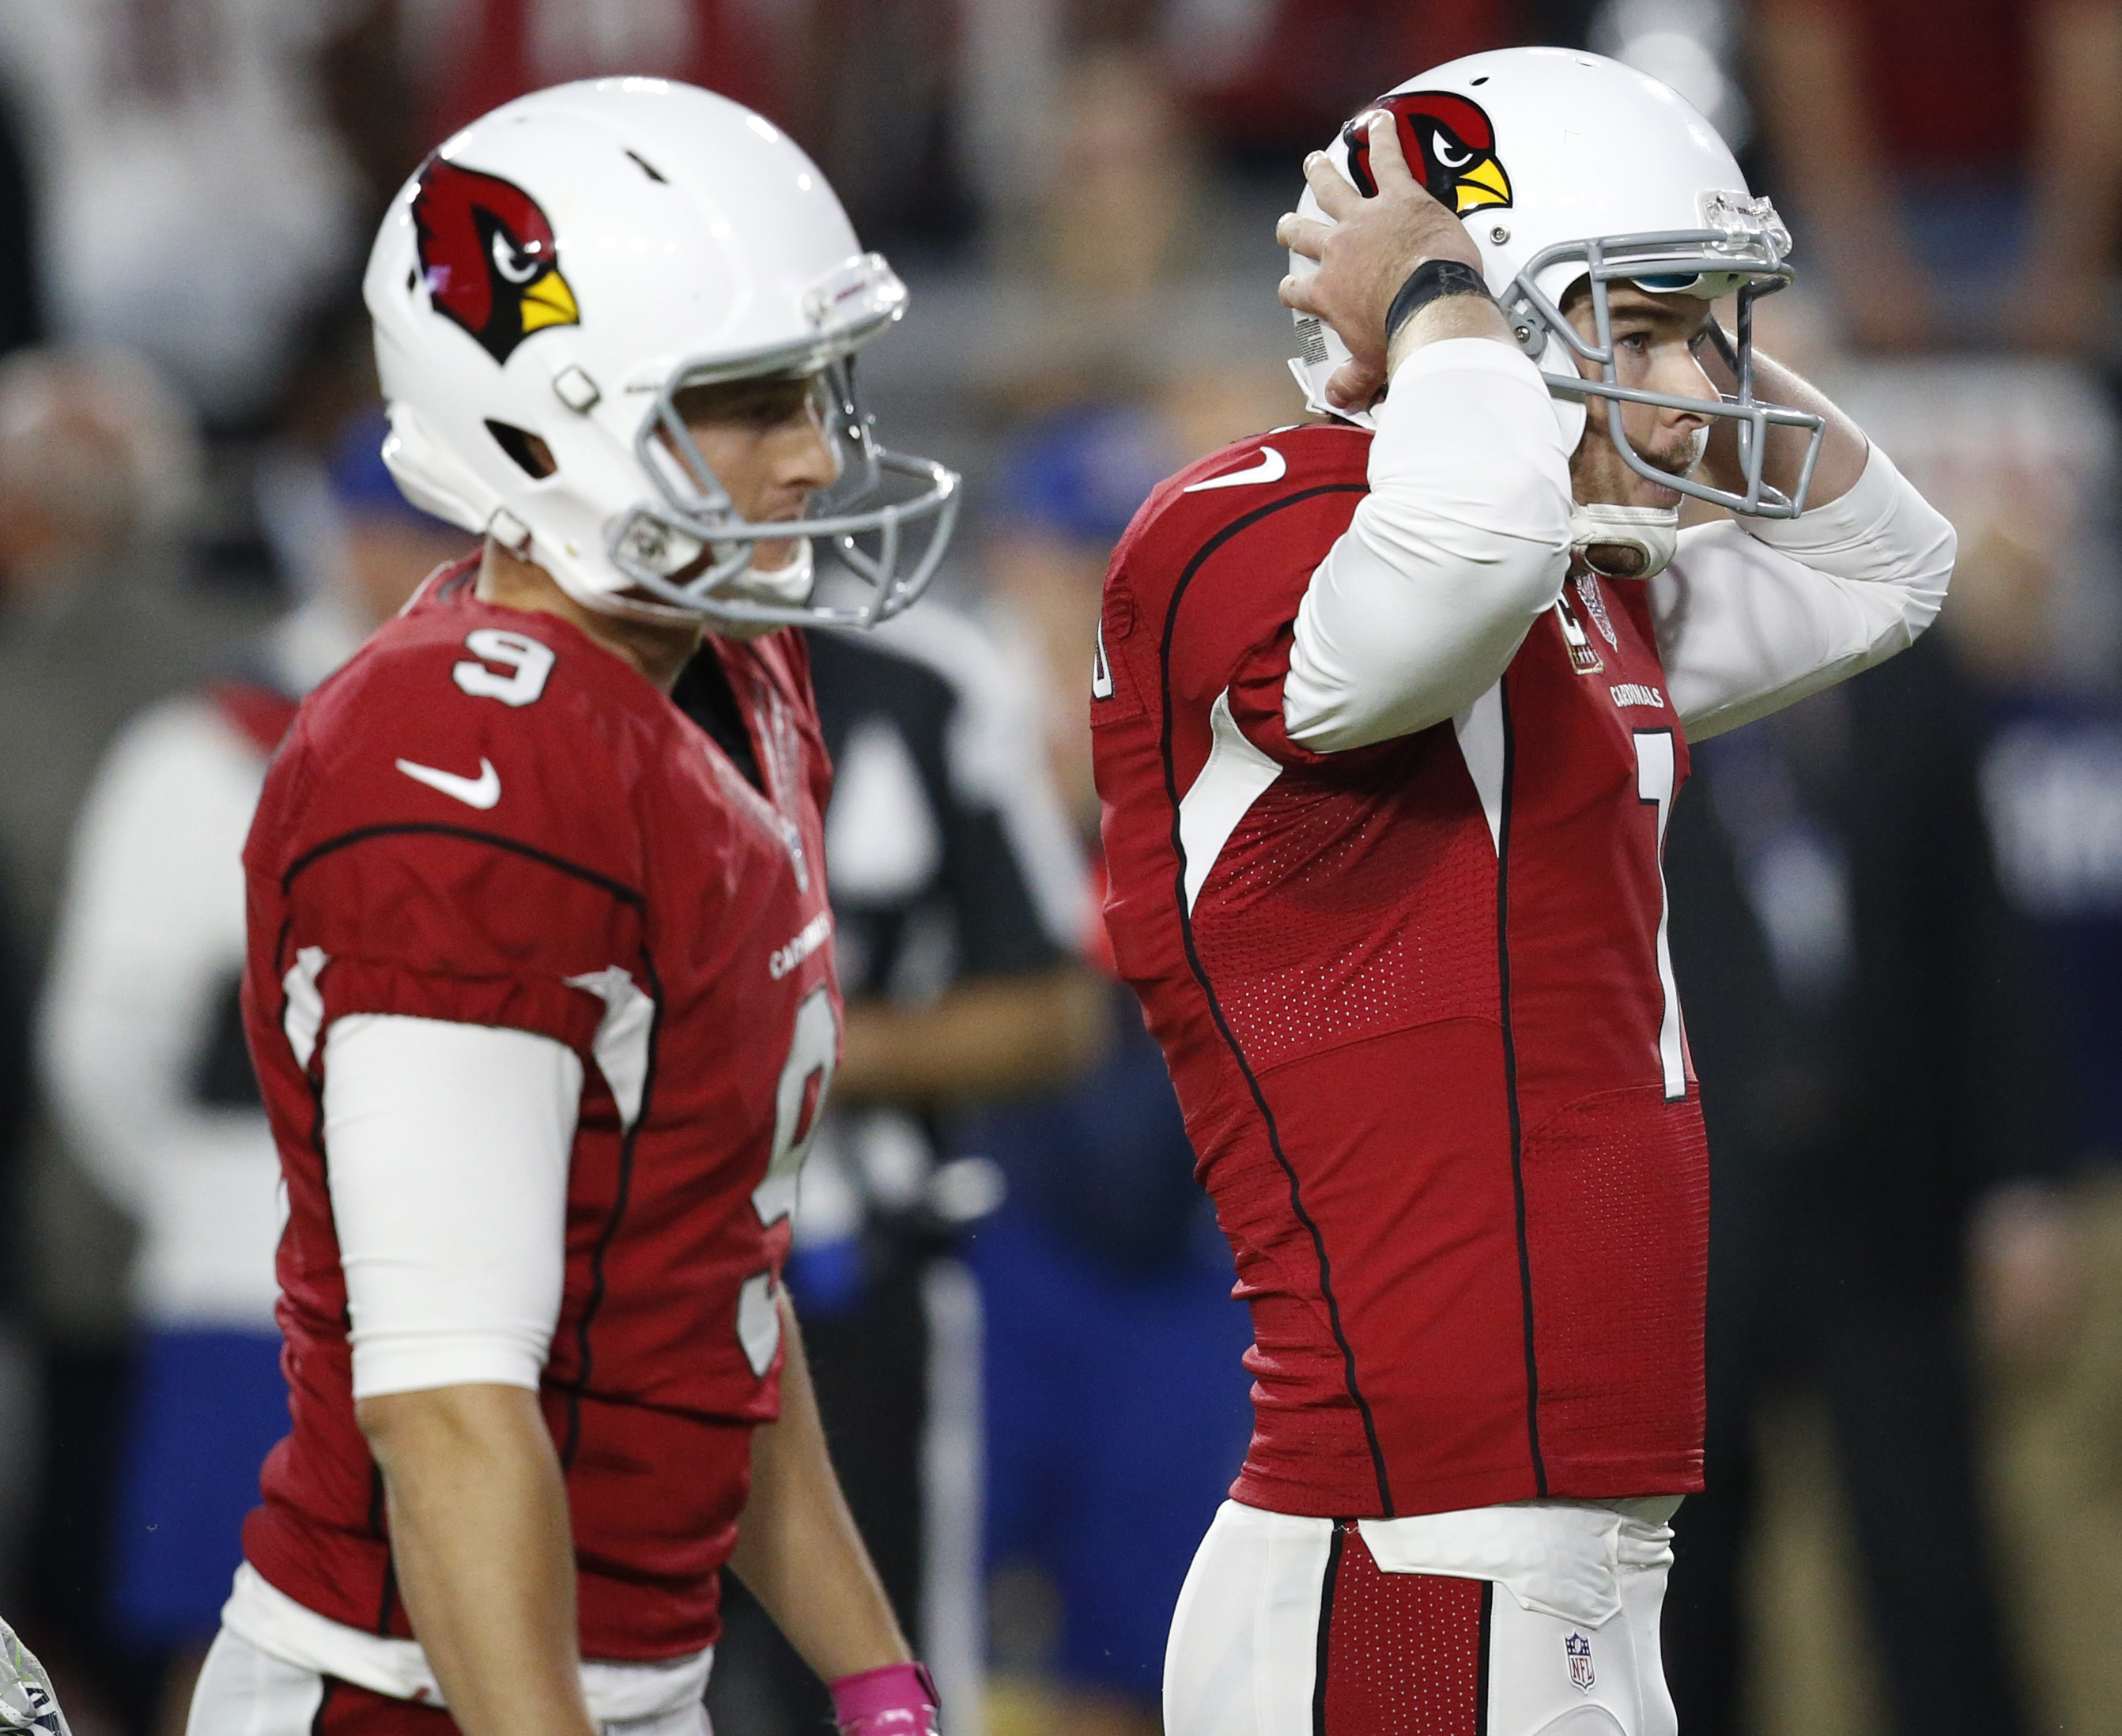 Arizona Cardinals kicker Chandler Catanzaro (7) reacts to missing a game-winning field goal as punter Ryan Quigley (9) looks on attempt during overtime of an NFL football game against the Seattle Seahawks, Sunday, Oct. 23, 2016, in Glendale, Ariz. The gam